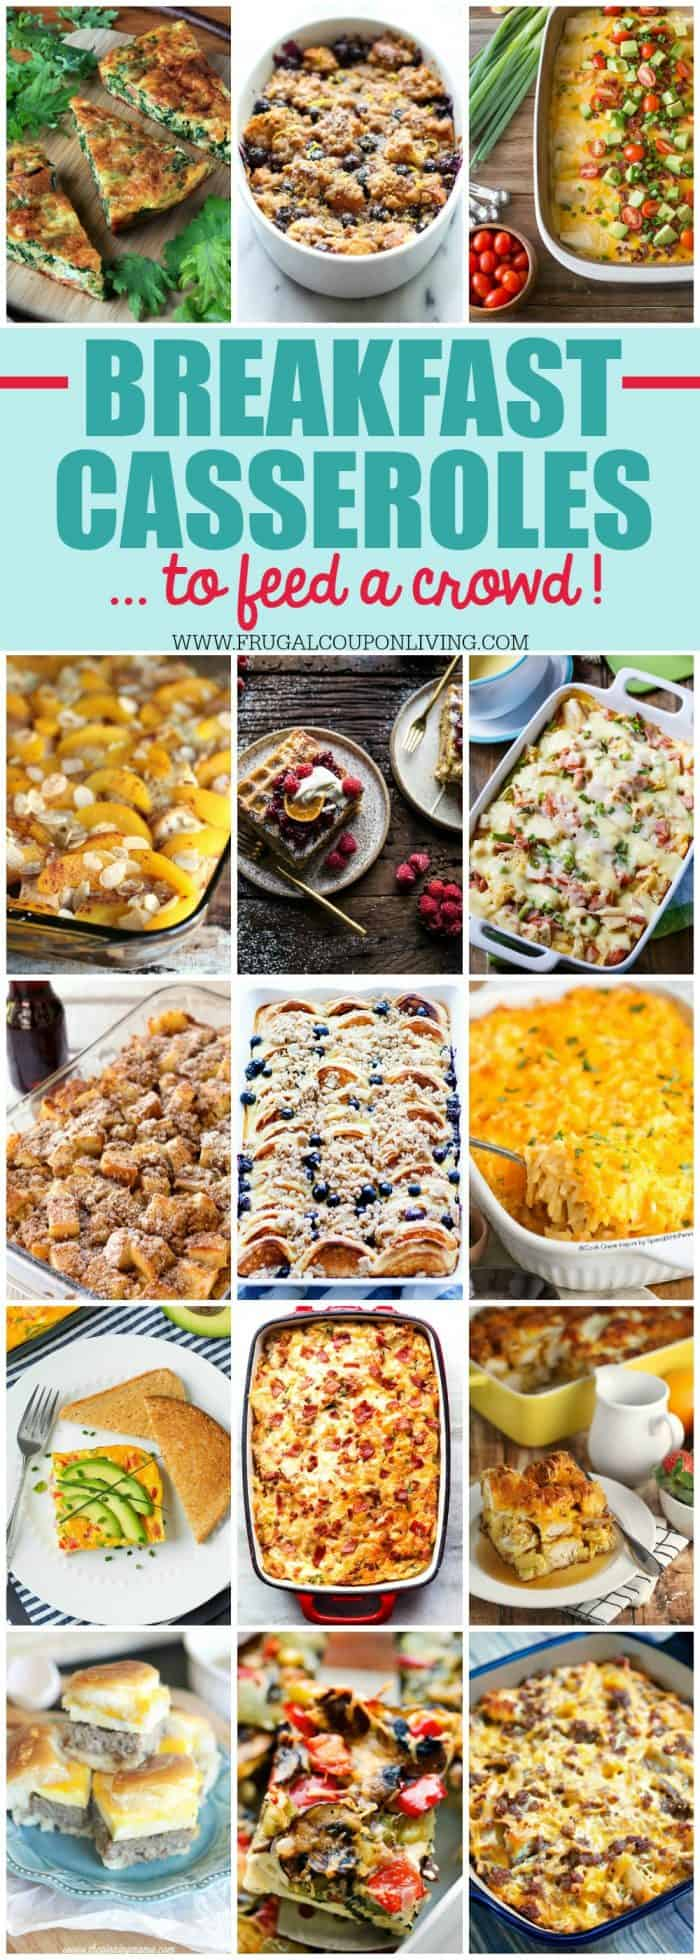 breakfast-casseroles-long-frugal-coupon-living